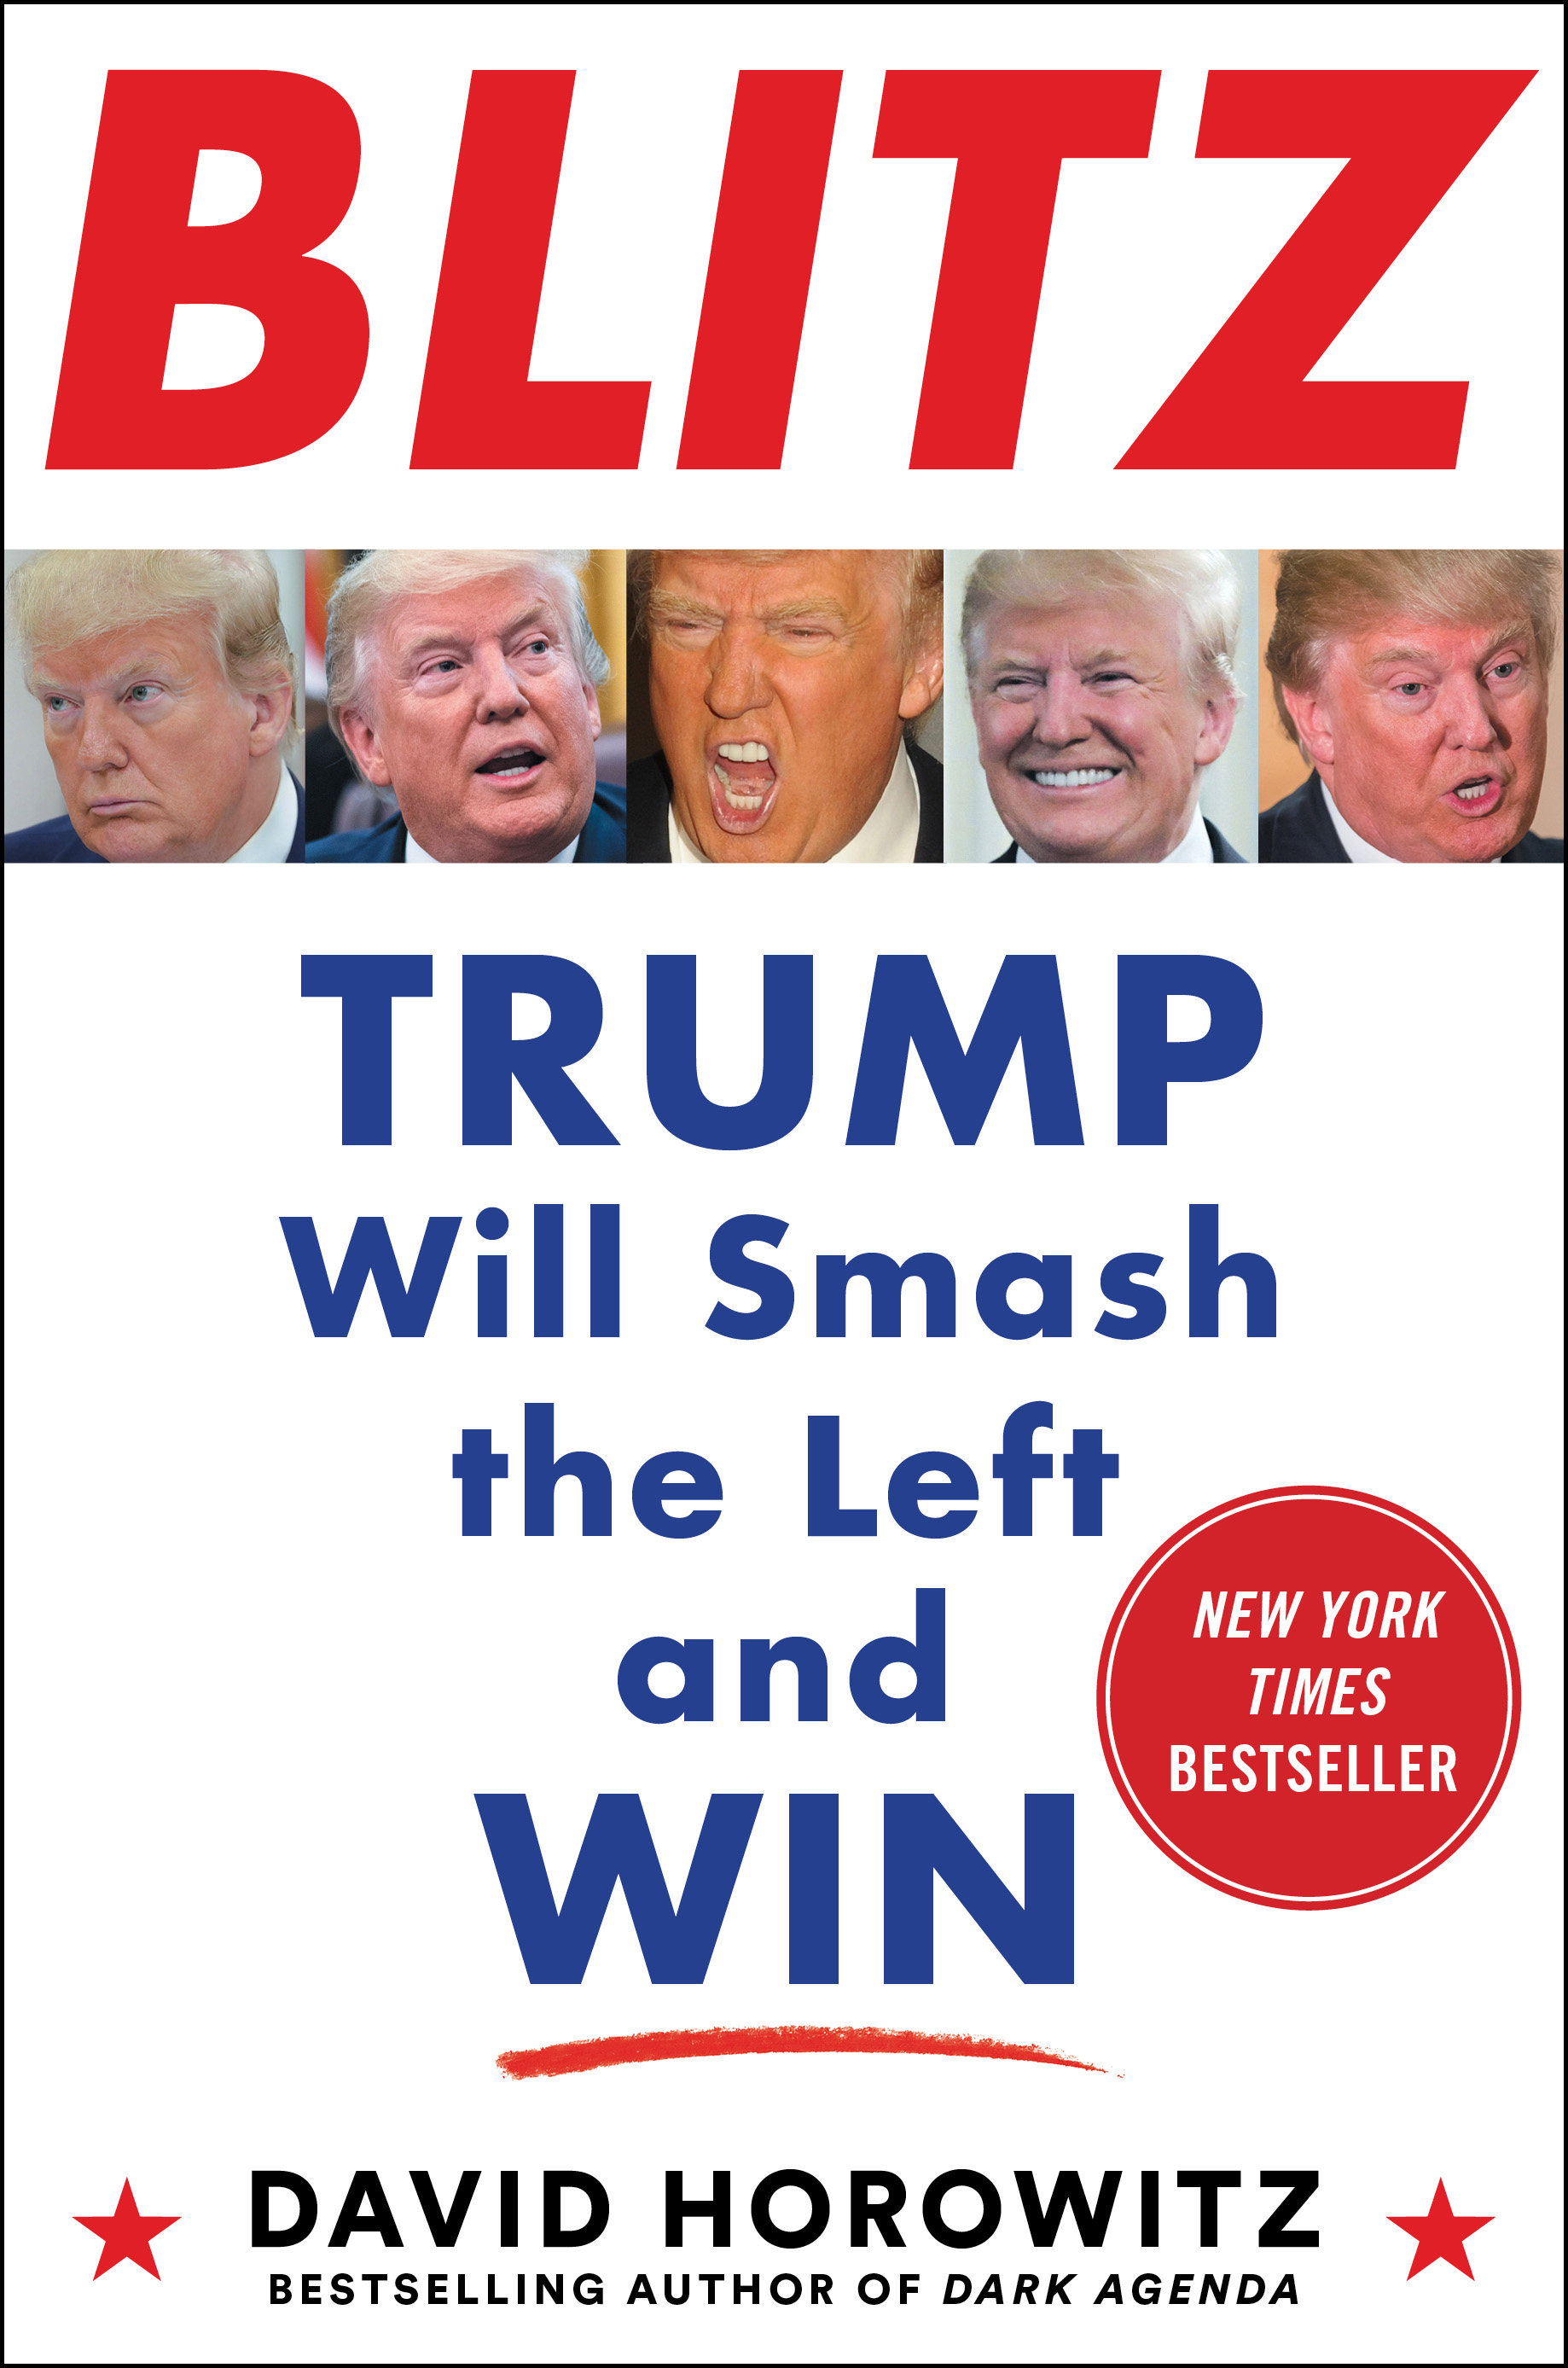 BLITZ Trump Will Smash the Left and Win